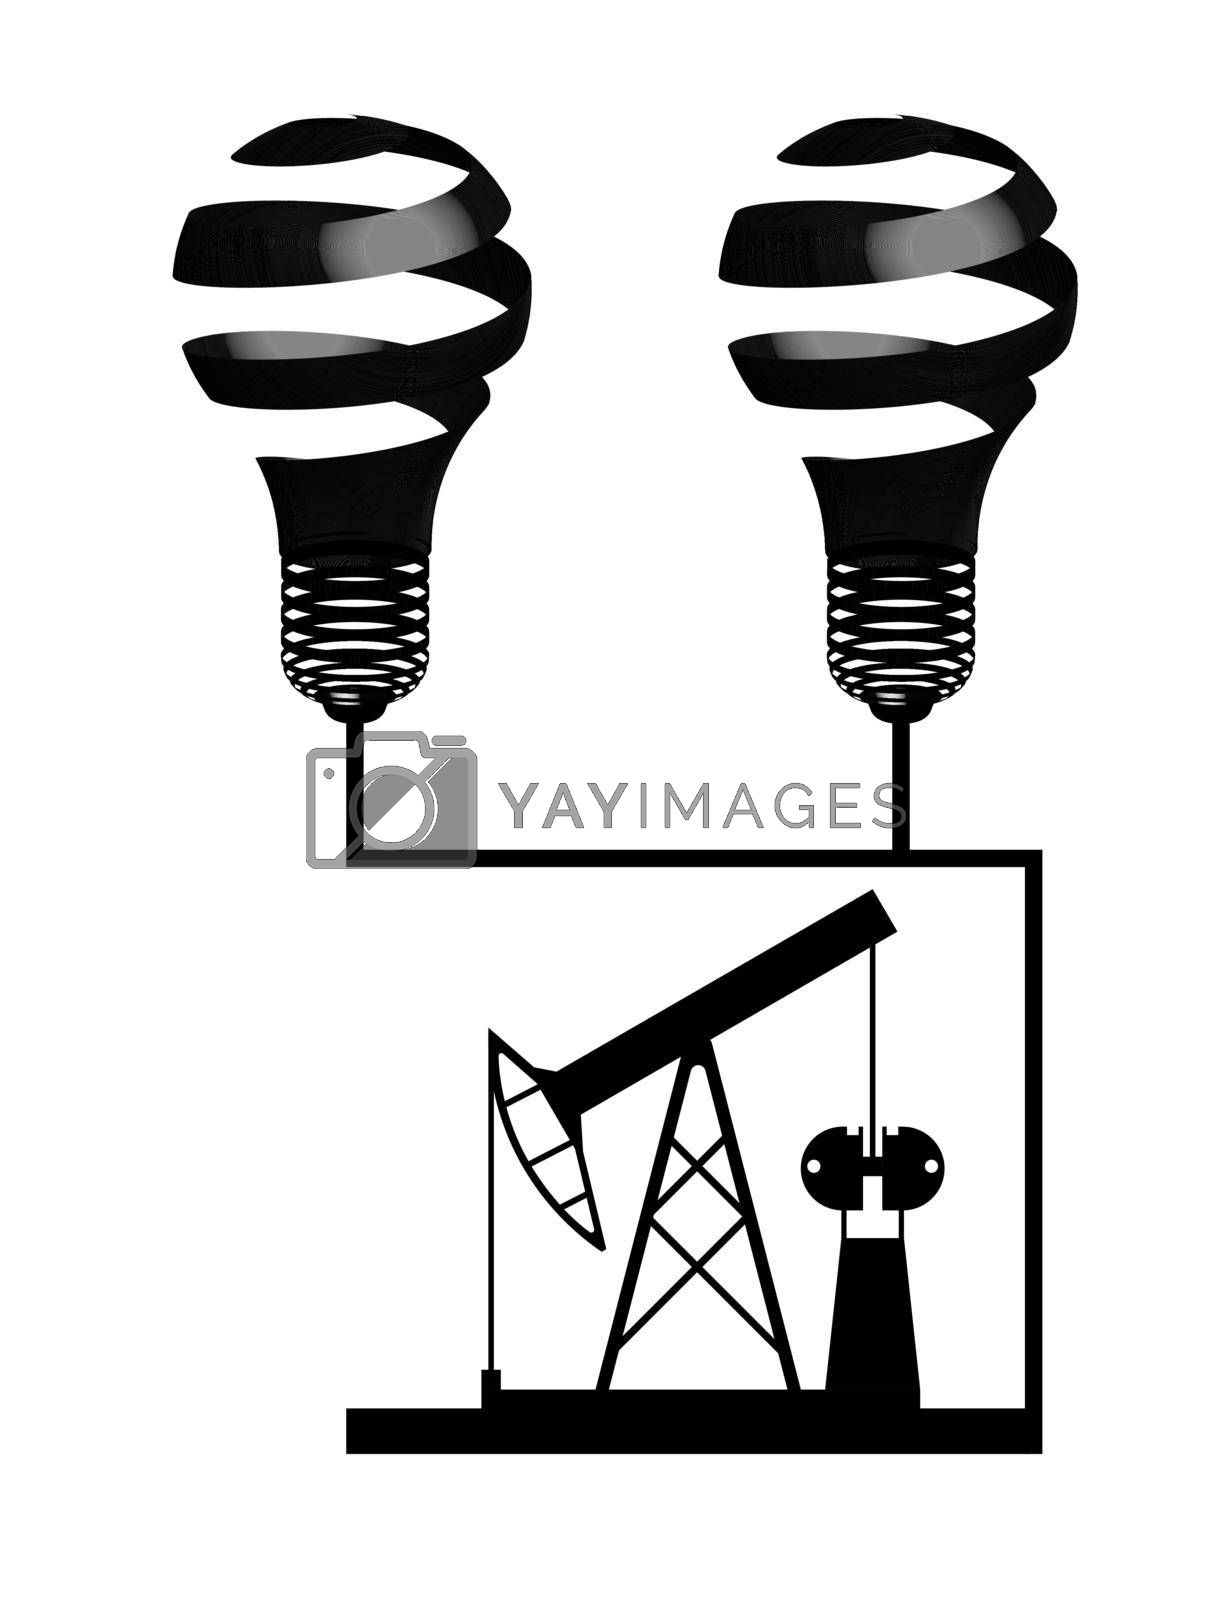 Royalty free image of illustration, oil rig black on a transparent background, energy security, oil production hazard by RNko